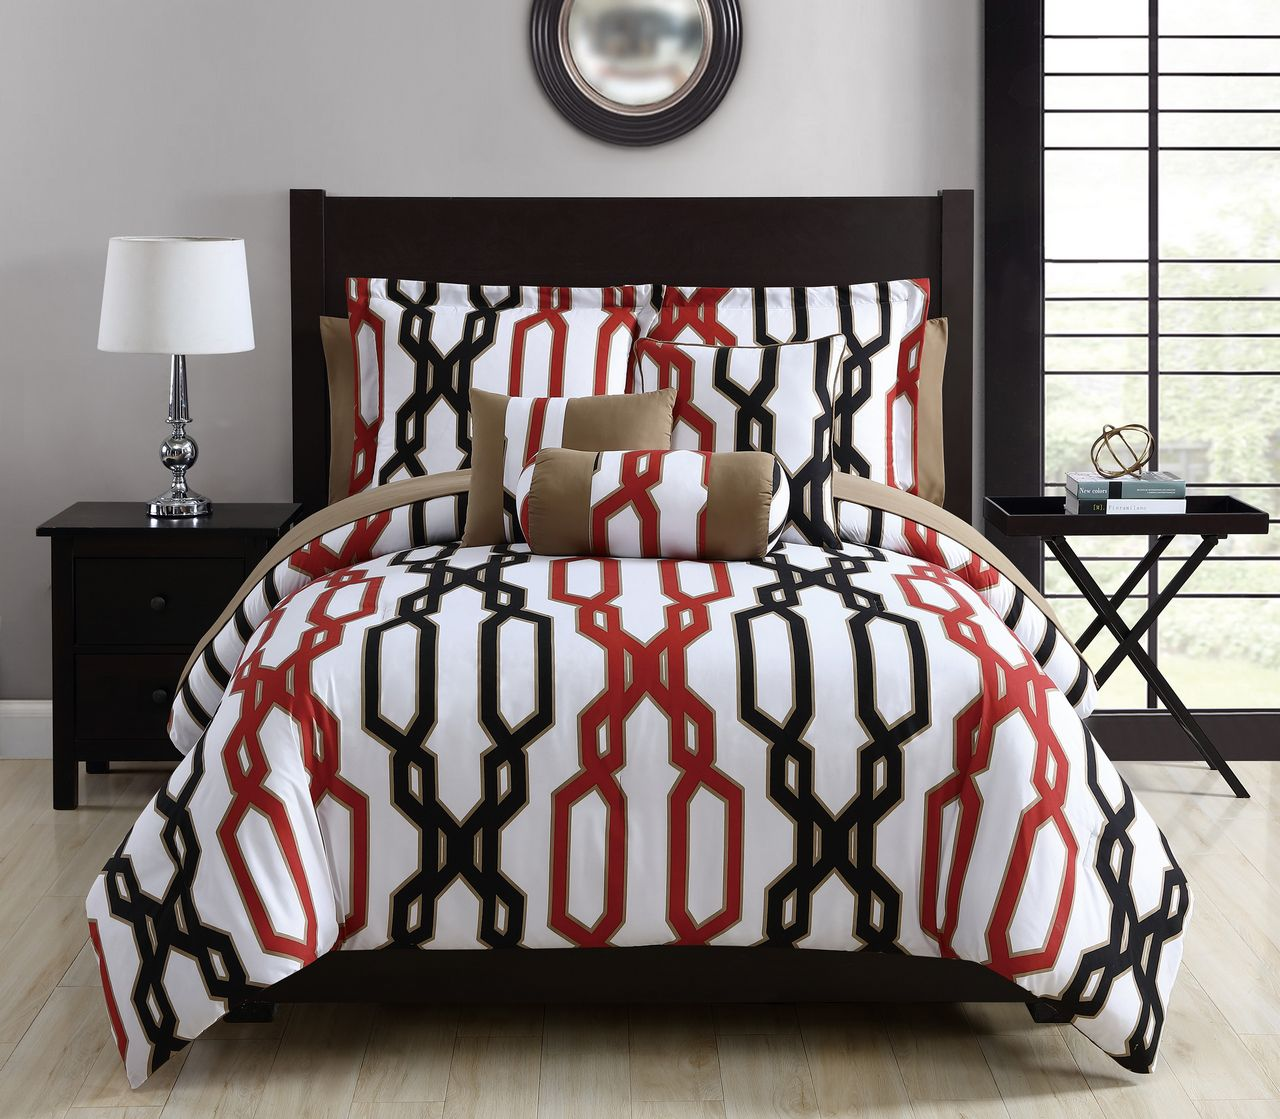 10 Piece Matt Red Black White Comforter Set